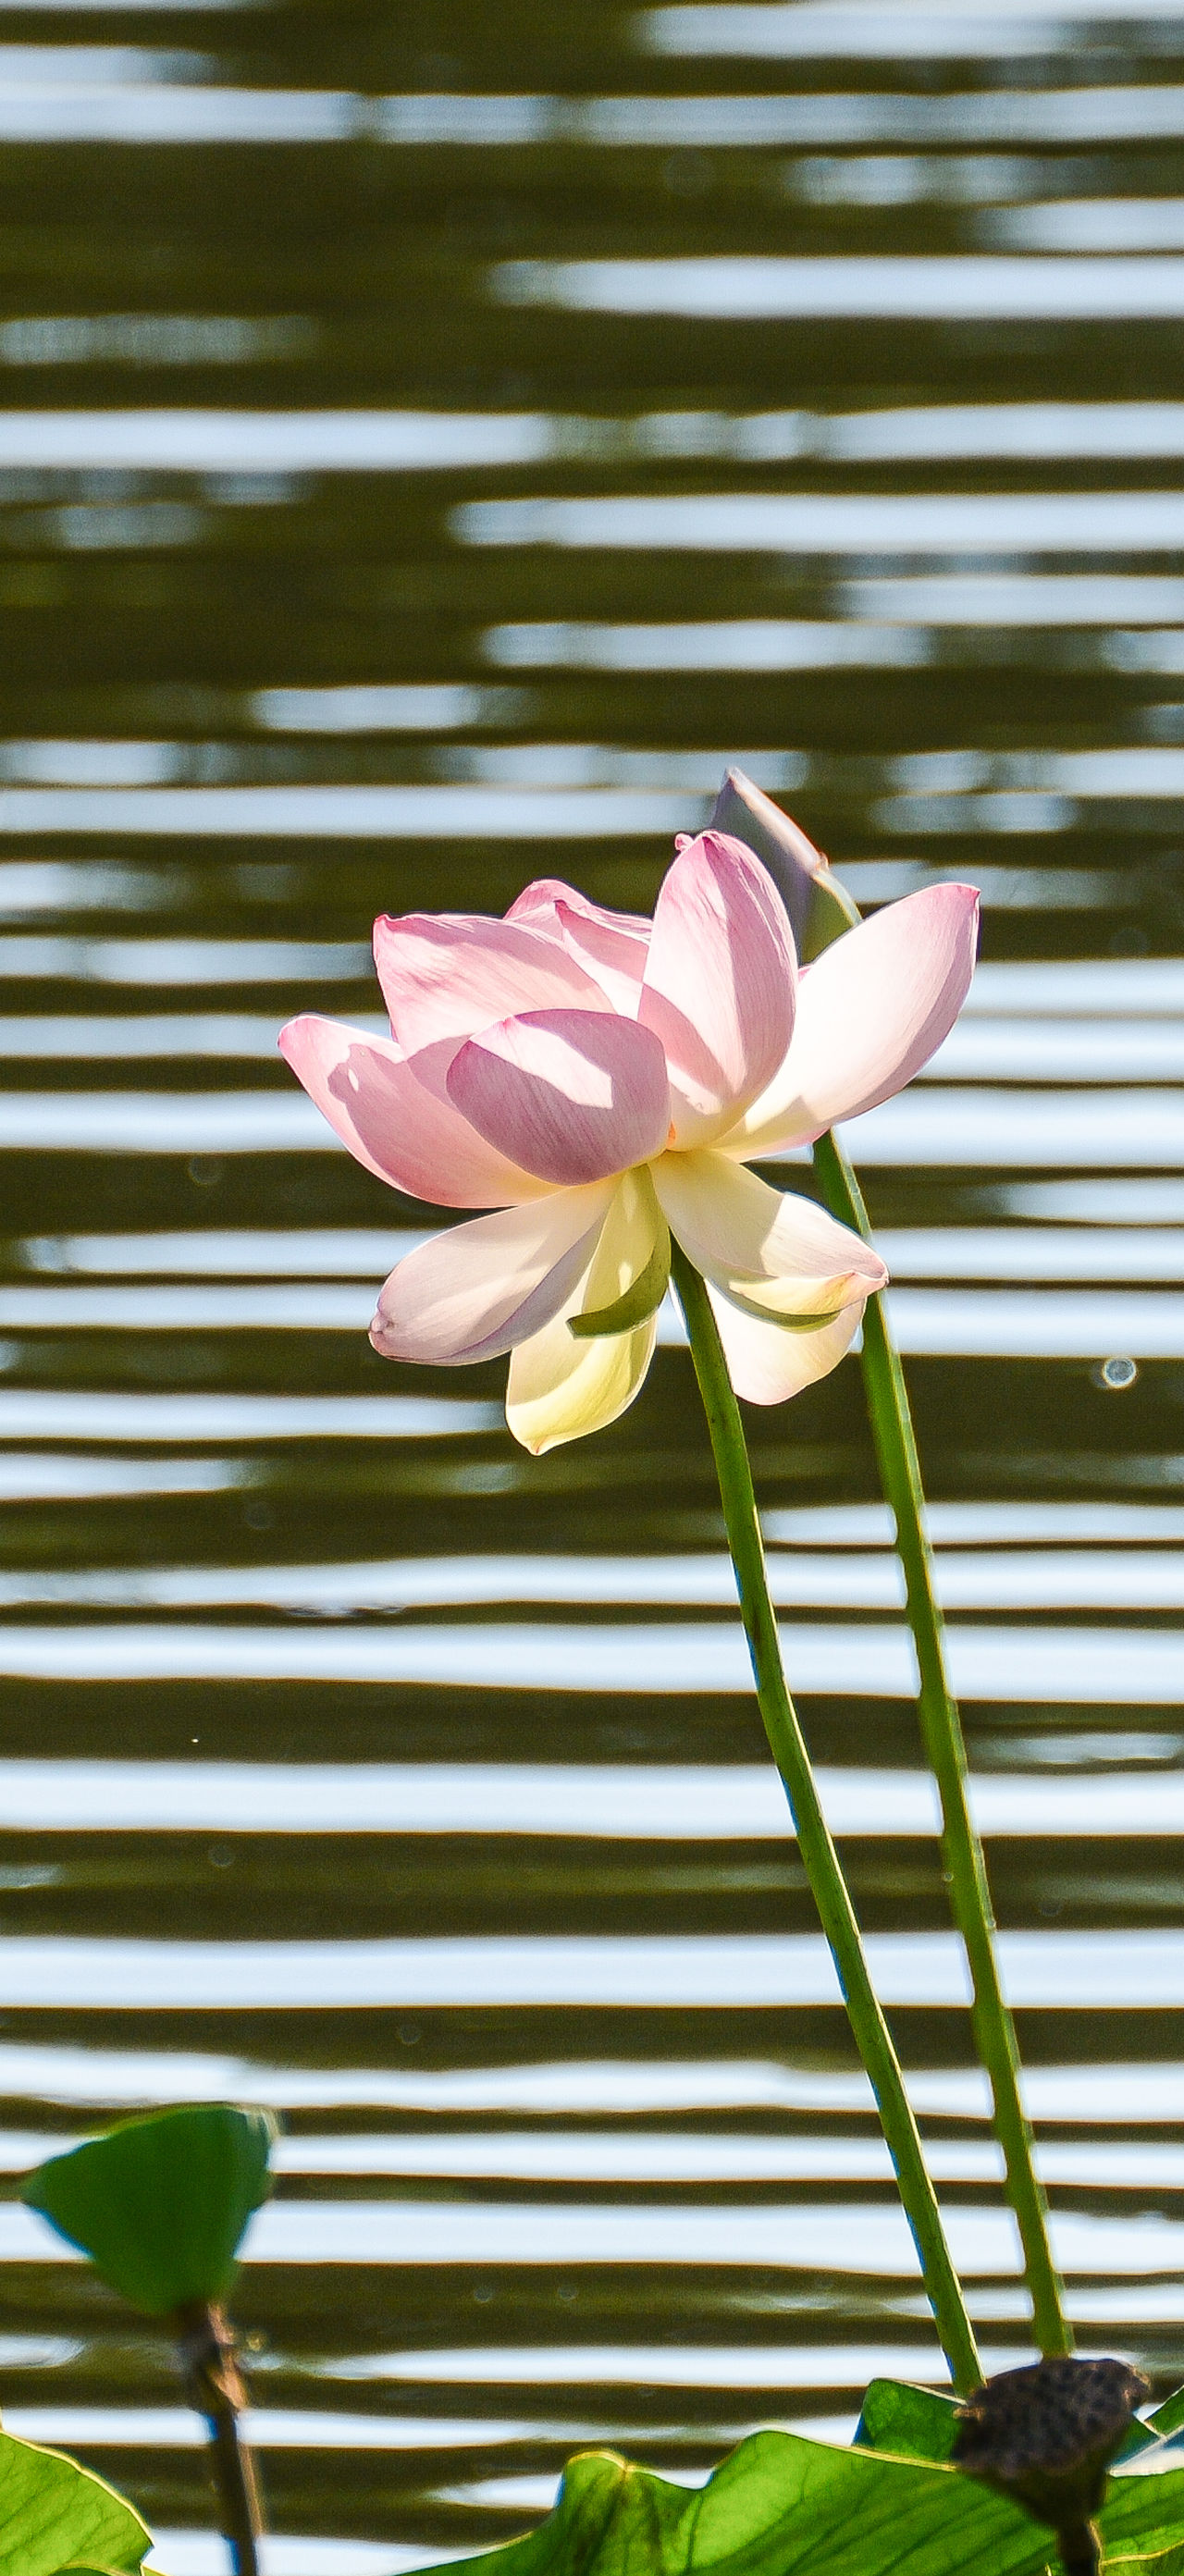 lily and lake Lily Flower Beauty In Nature Flower Flower Head Fragility Lake And Lily Lily Nature No People Petal Pink Color Plant